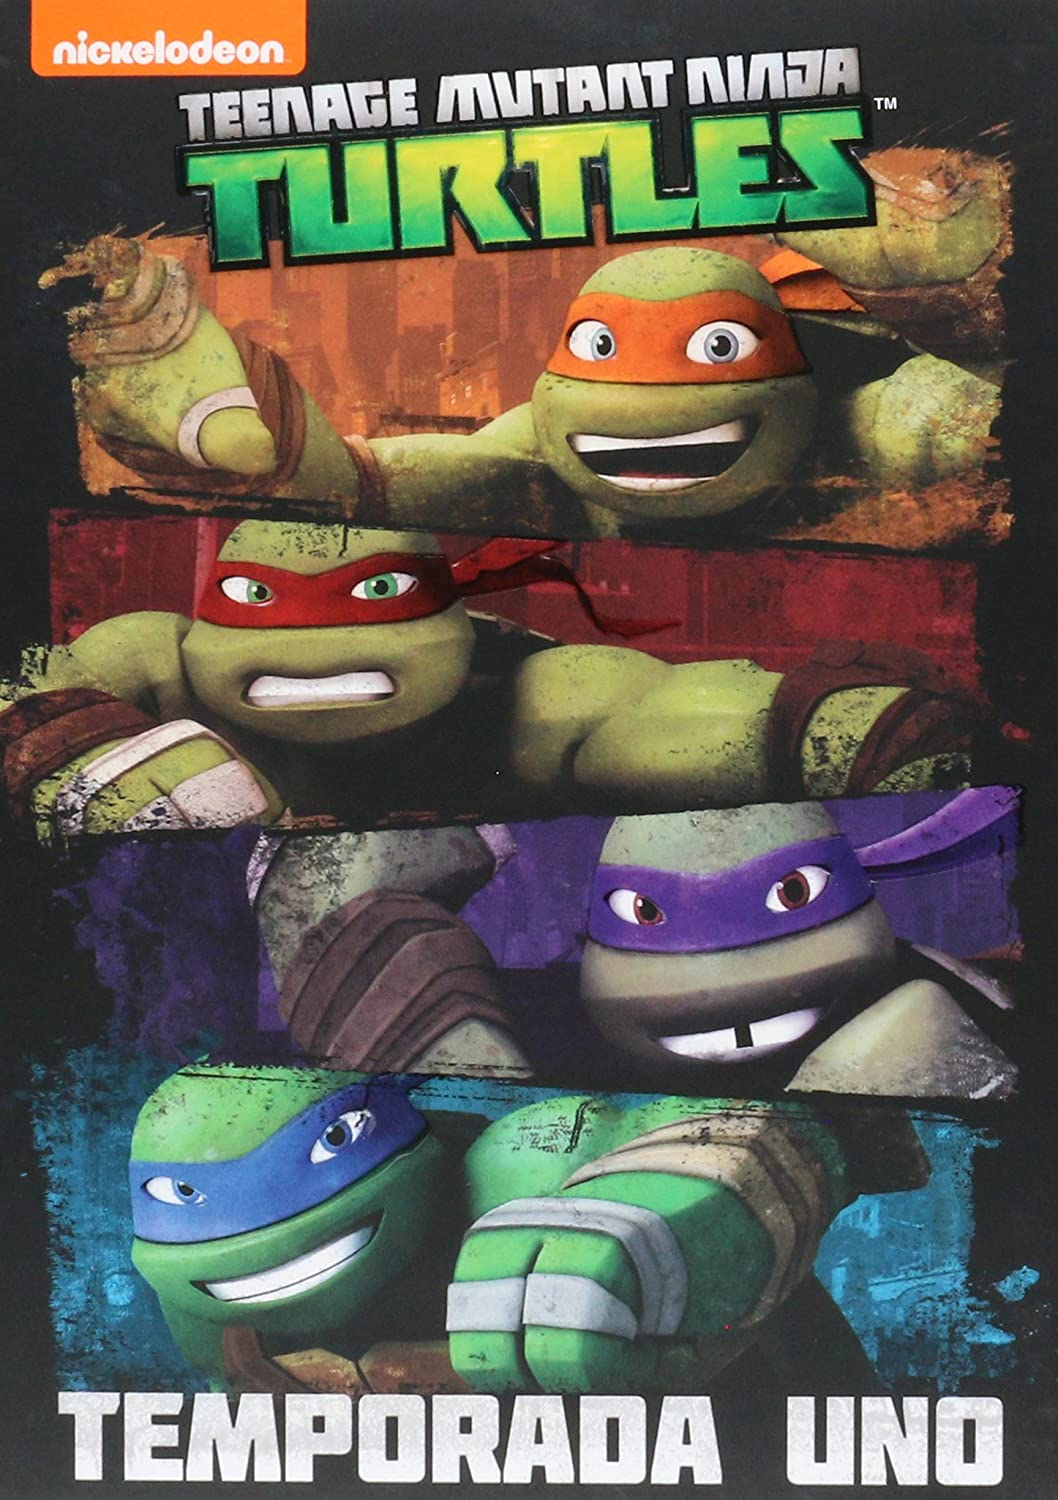 Amazon.com: Tortugas Ninja Teenage Mutant Ninja Temporada 1 ...